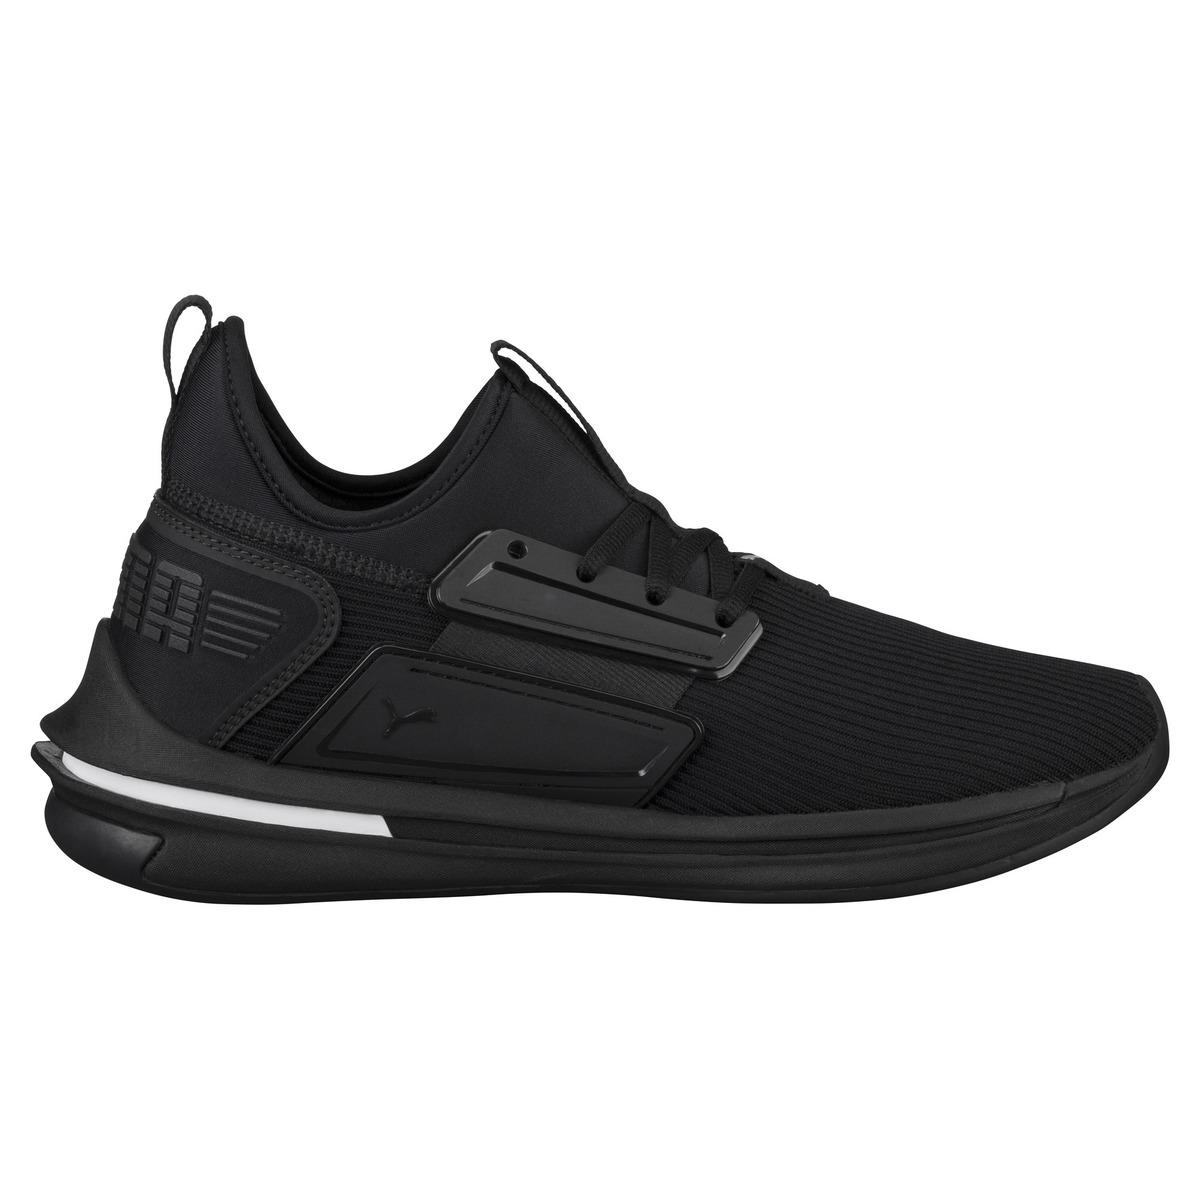 67e8cbc15148 Puma Ignite Limitless Sr Men s Running Shoes in Black for Men - Lyst